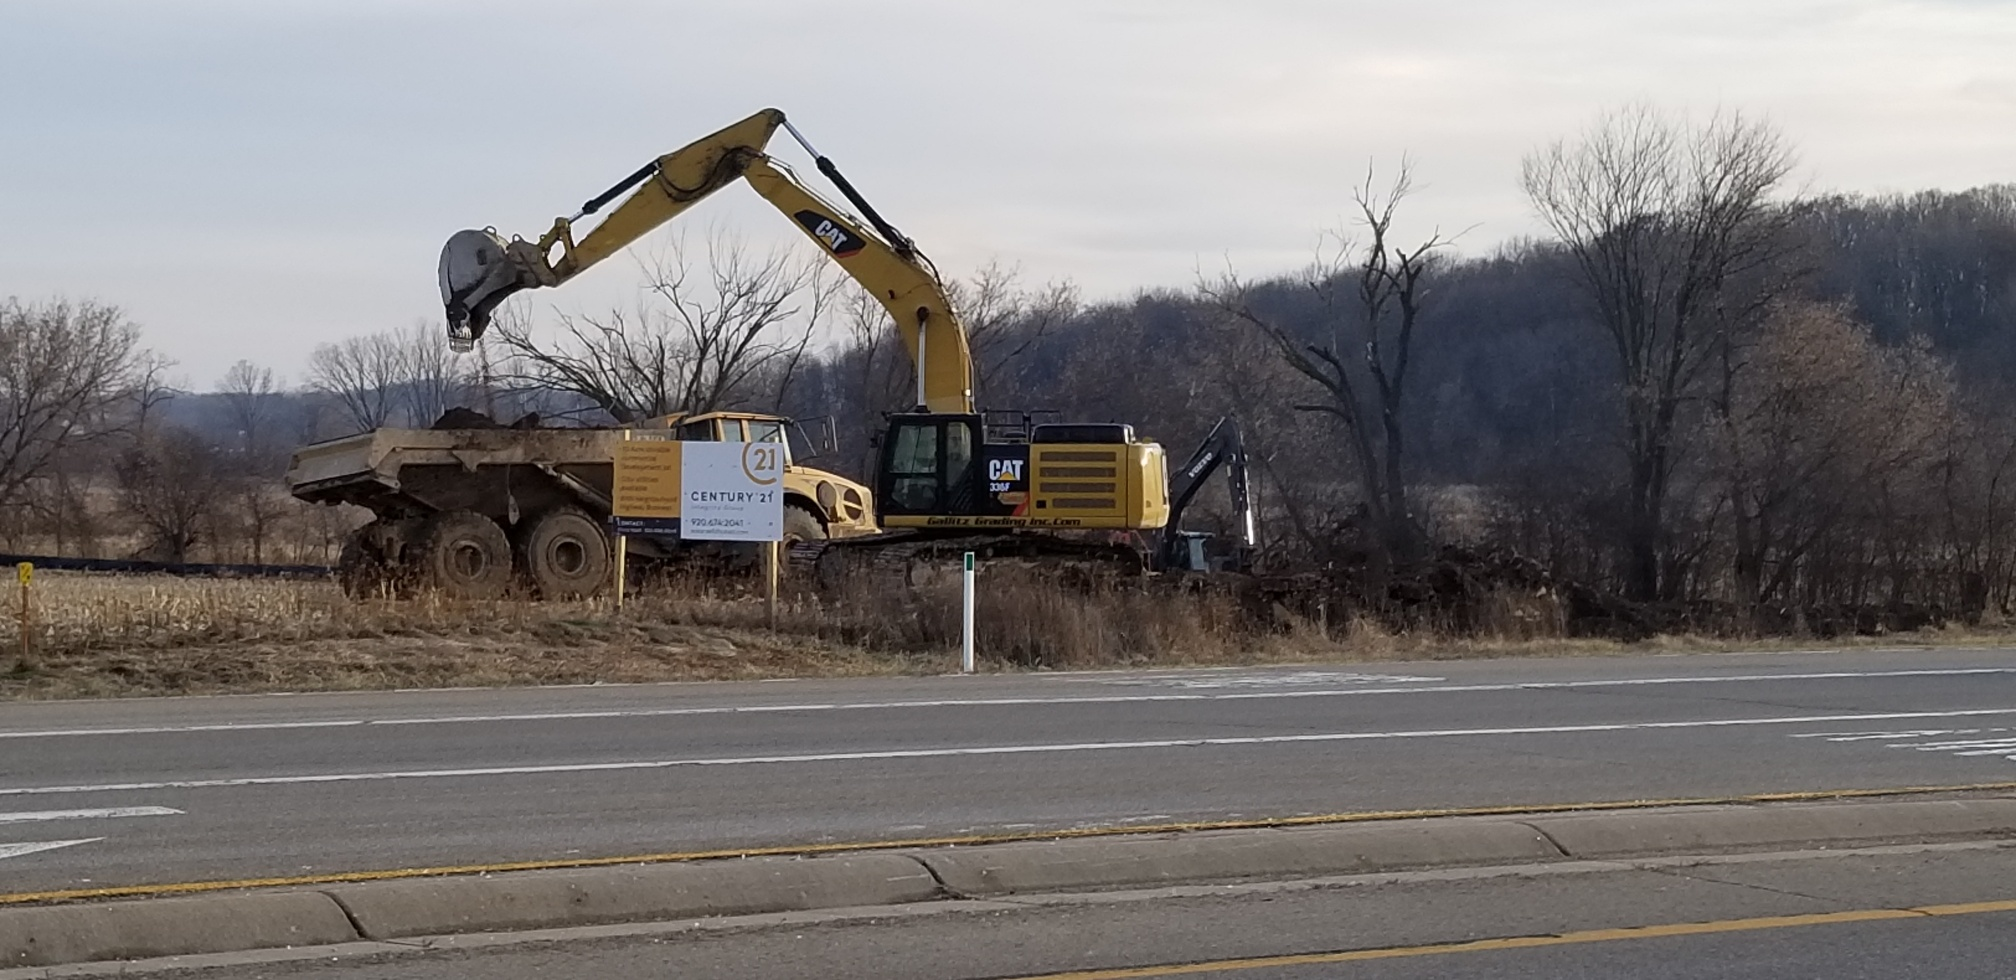 Construction of a hotel and retention basin have started on the northern border of the City of Jefferson!